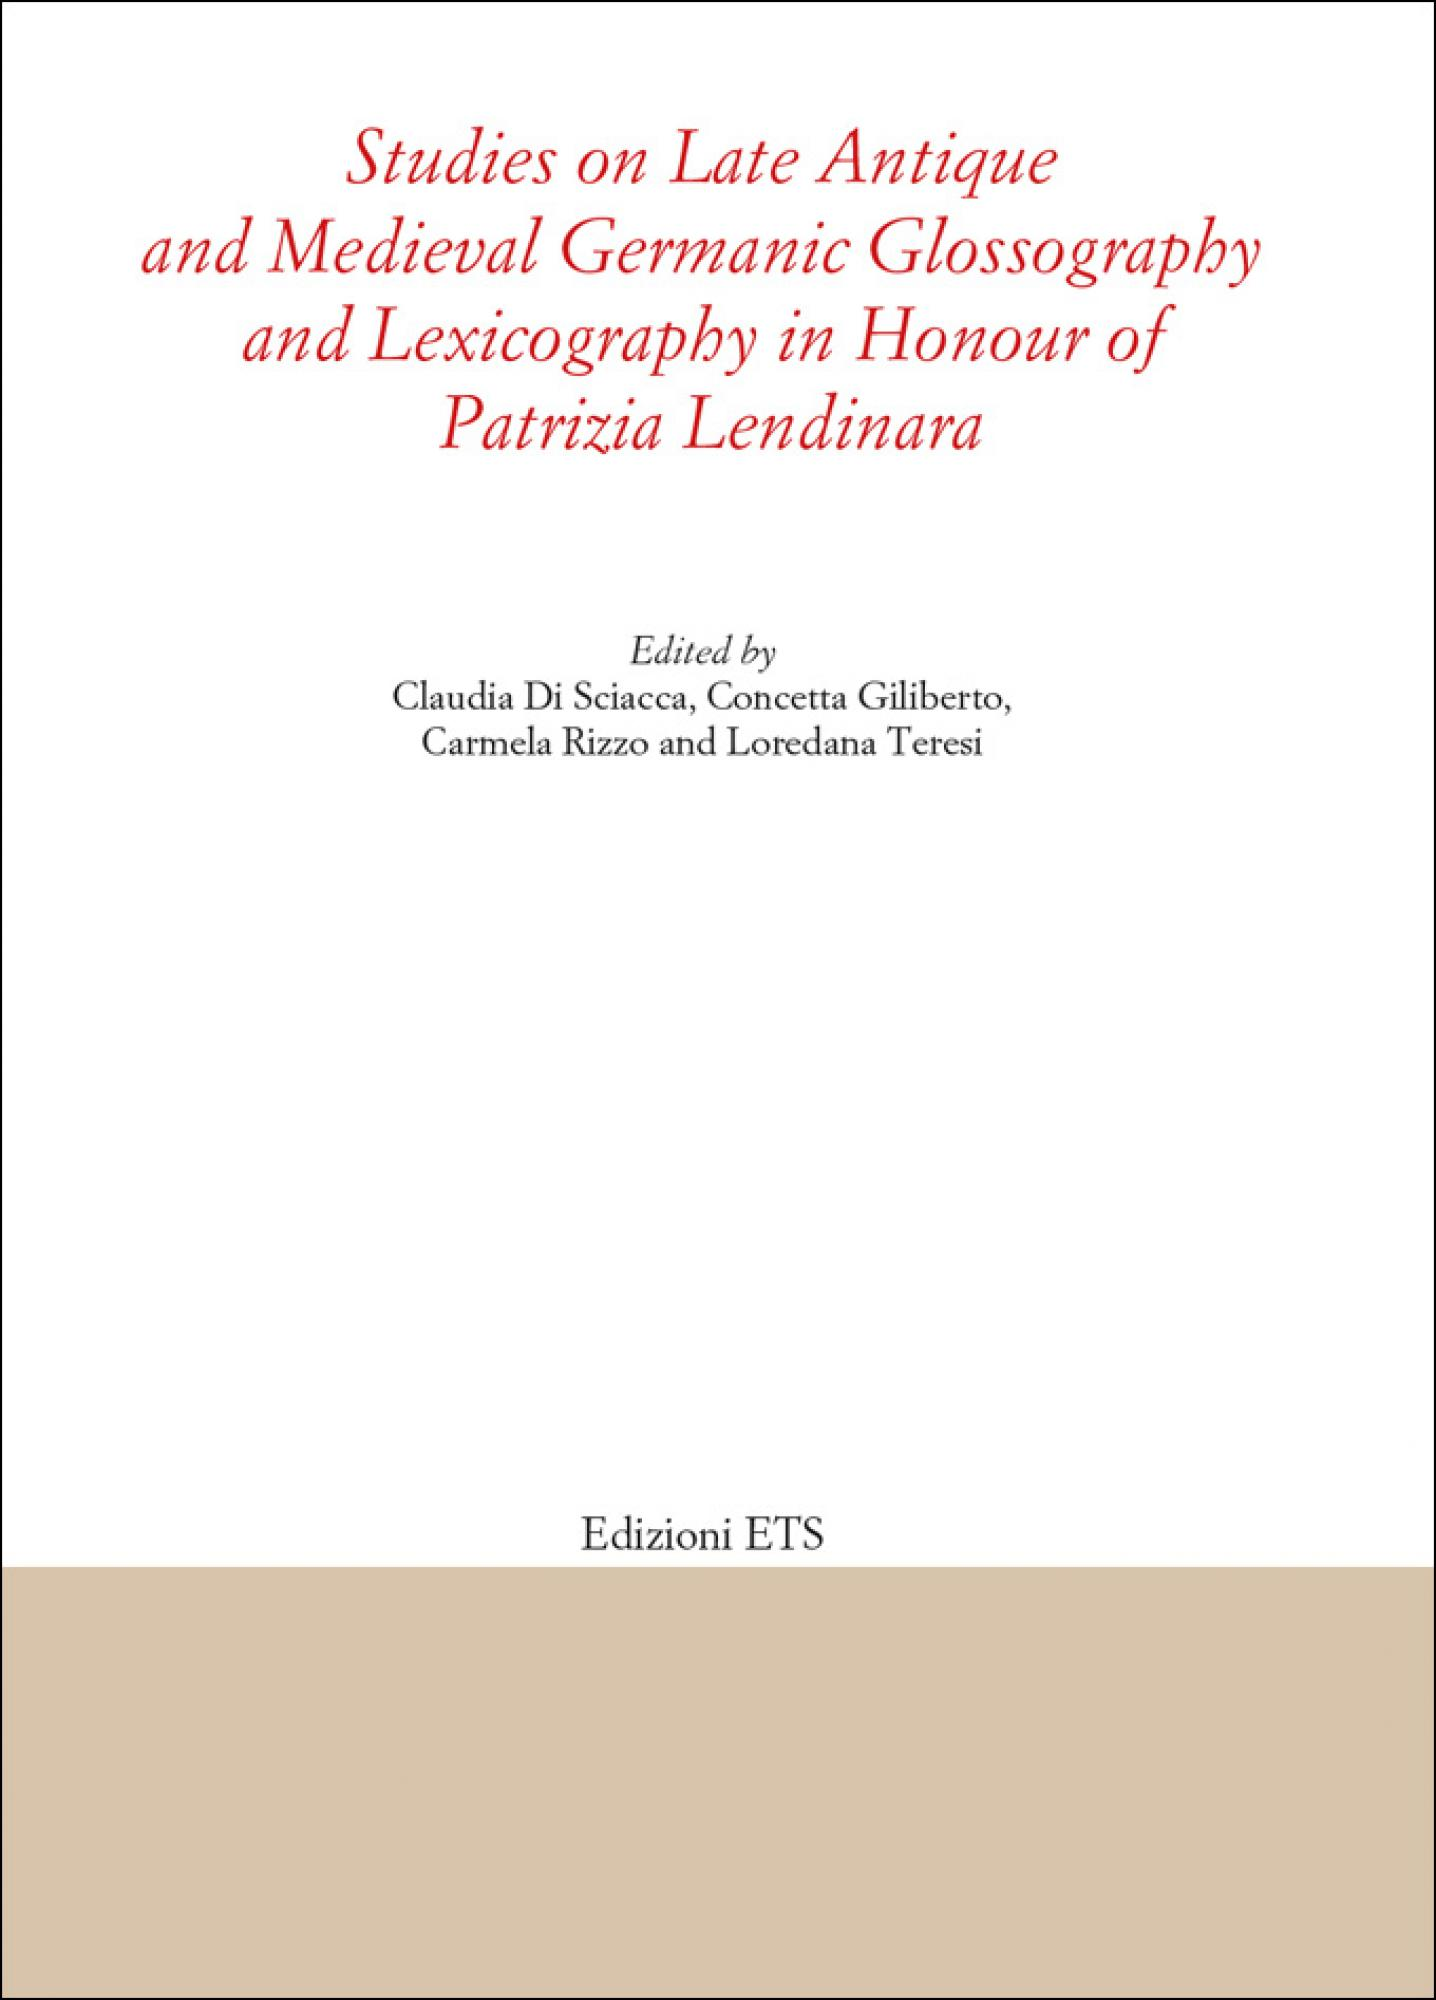 Studies on Late Antique and Medieval Germanic Glossography and Lexicography in Honour of Patrizia Lendinara<br /><br />